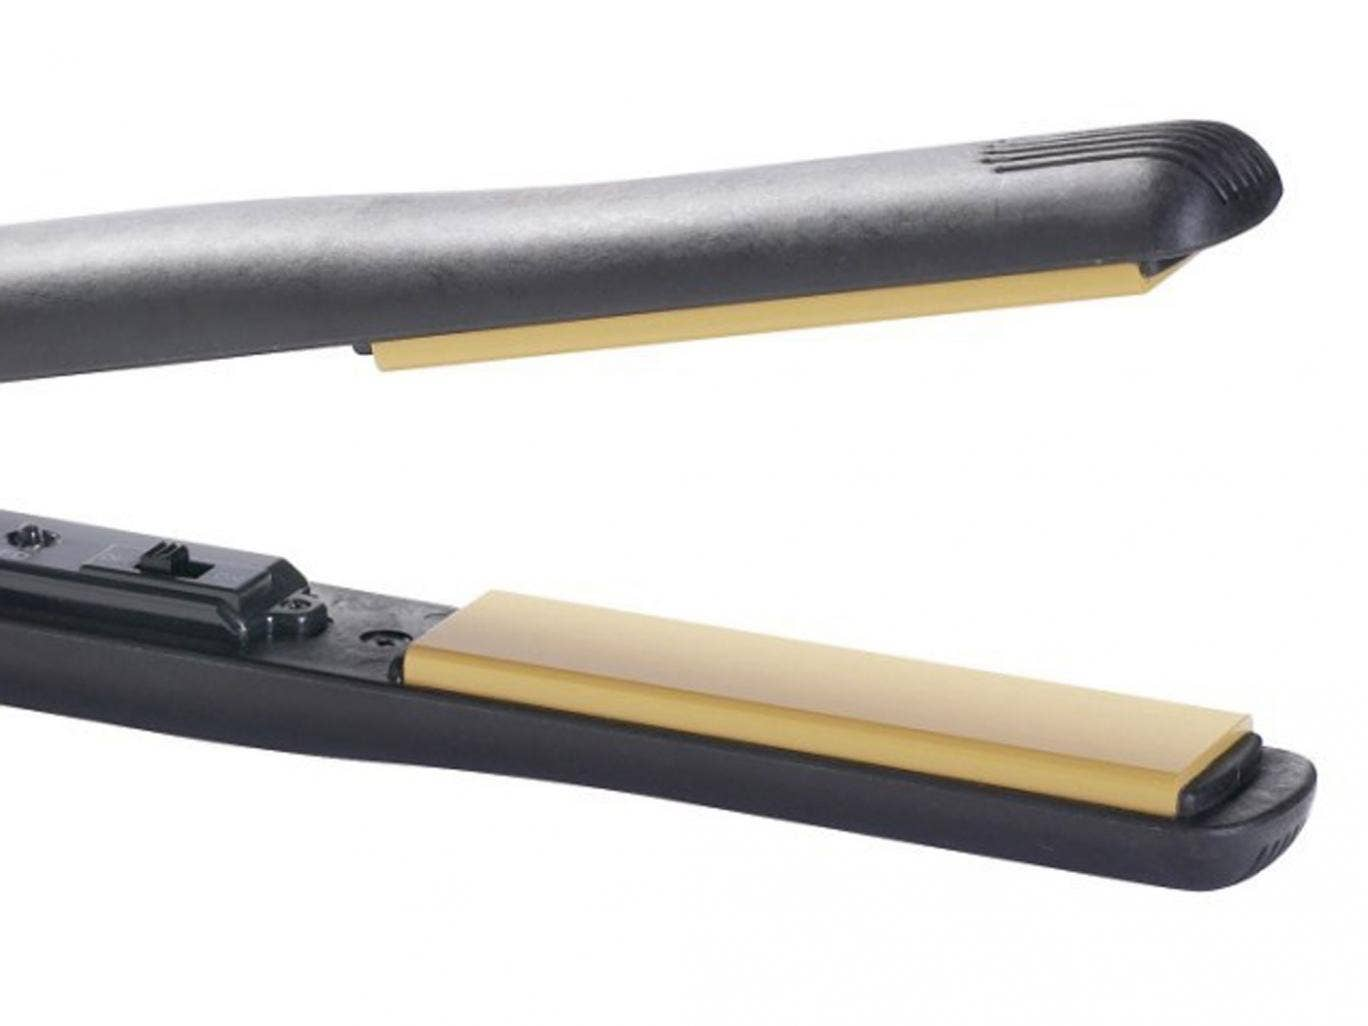 Doctors have noticed that more and more children are hurt by hair straighteners - especially during the Christmas period